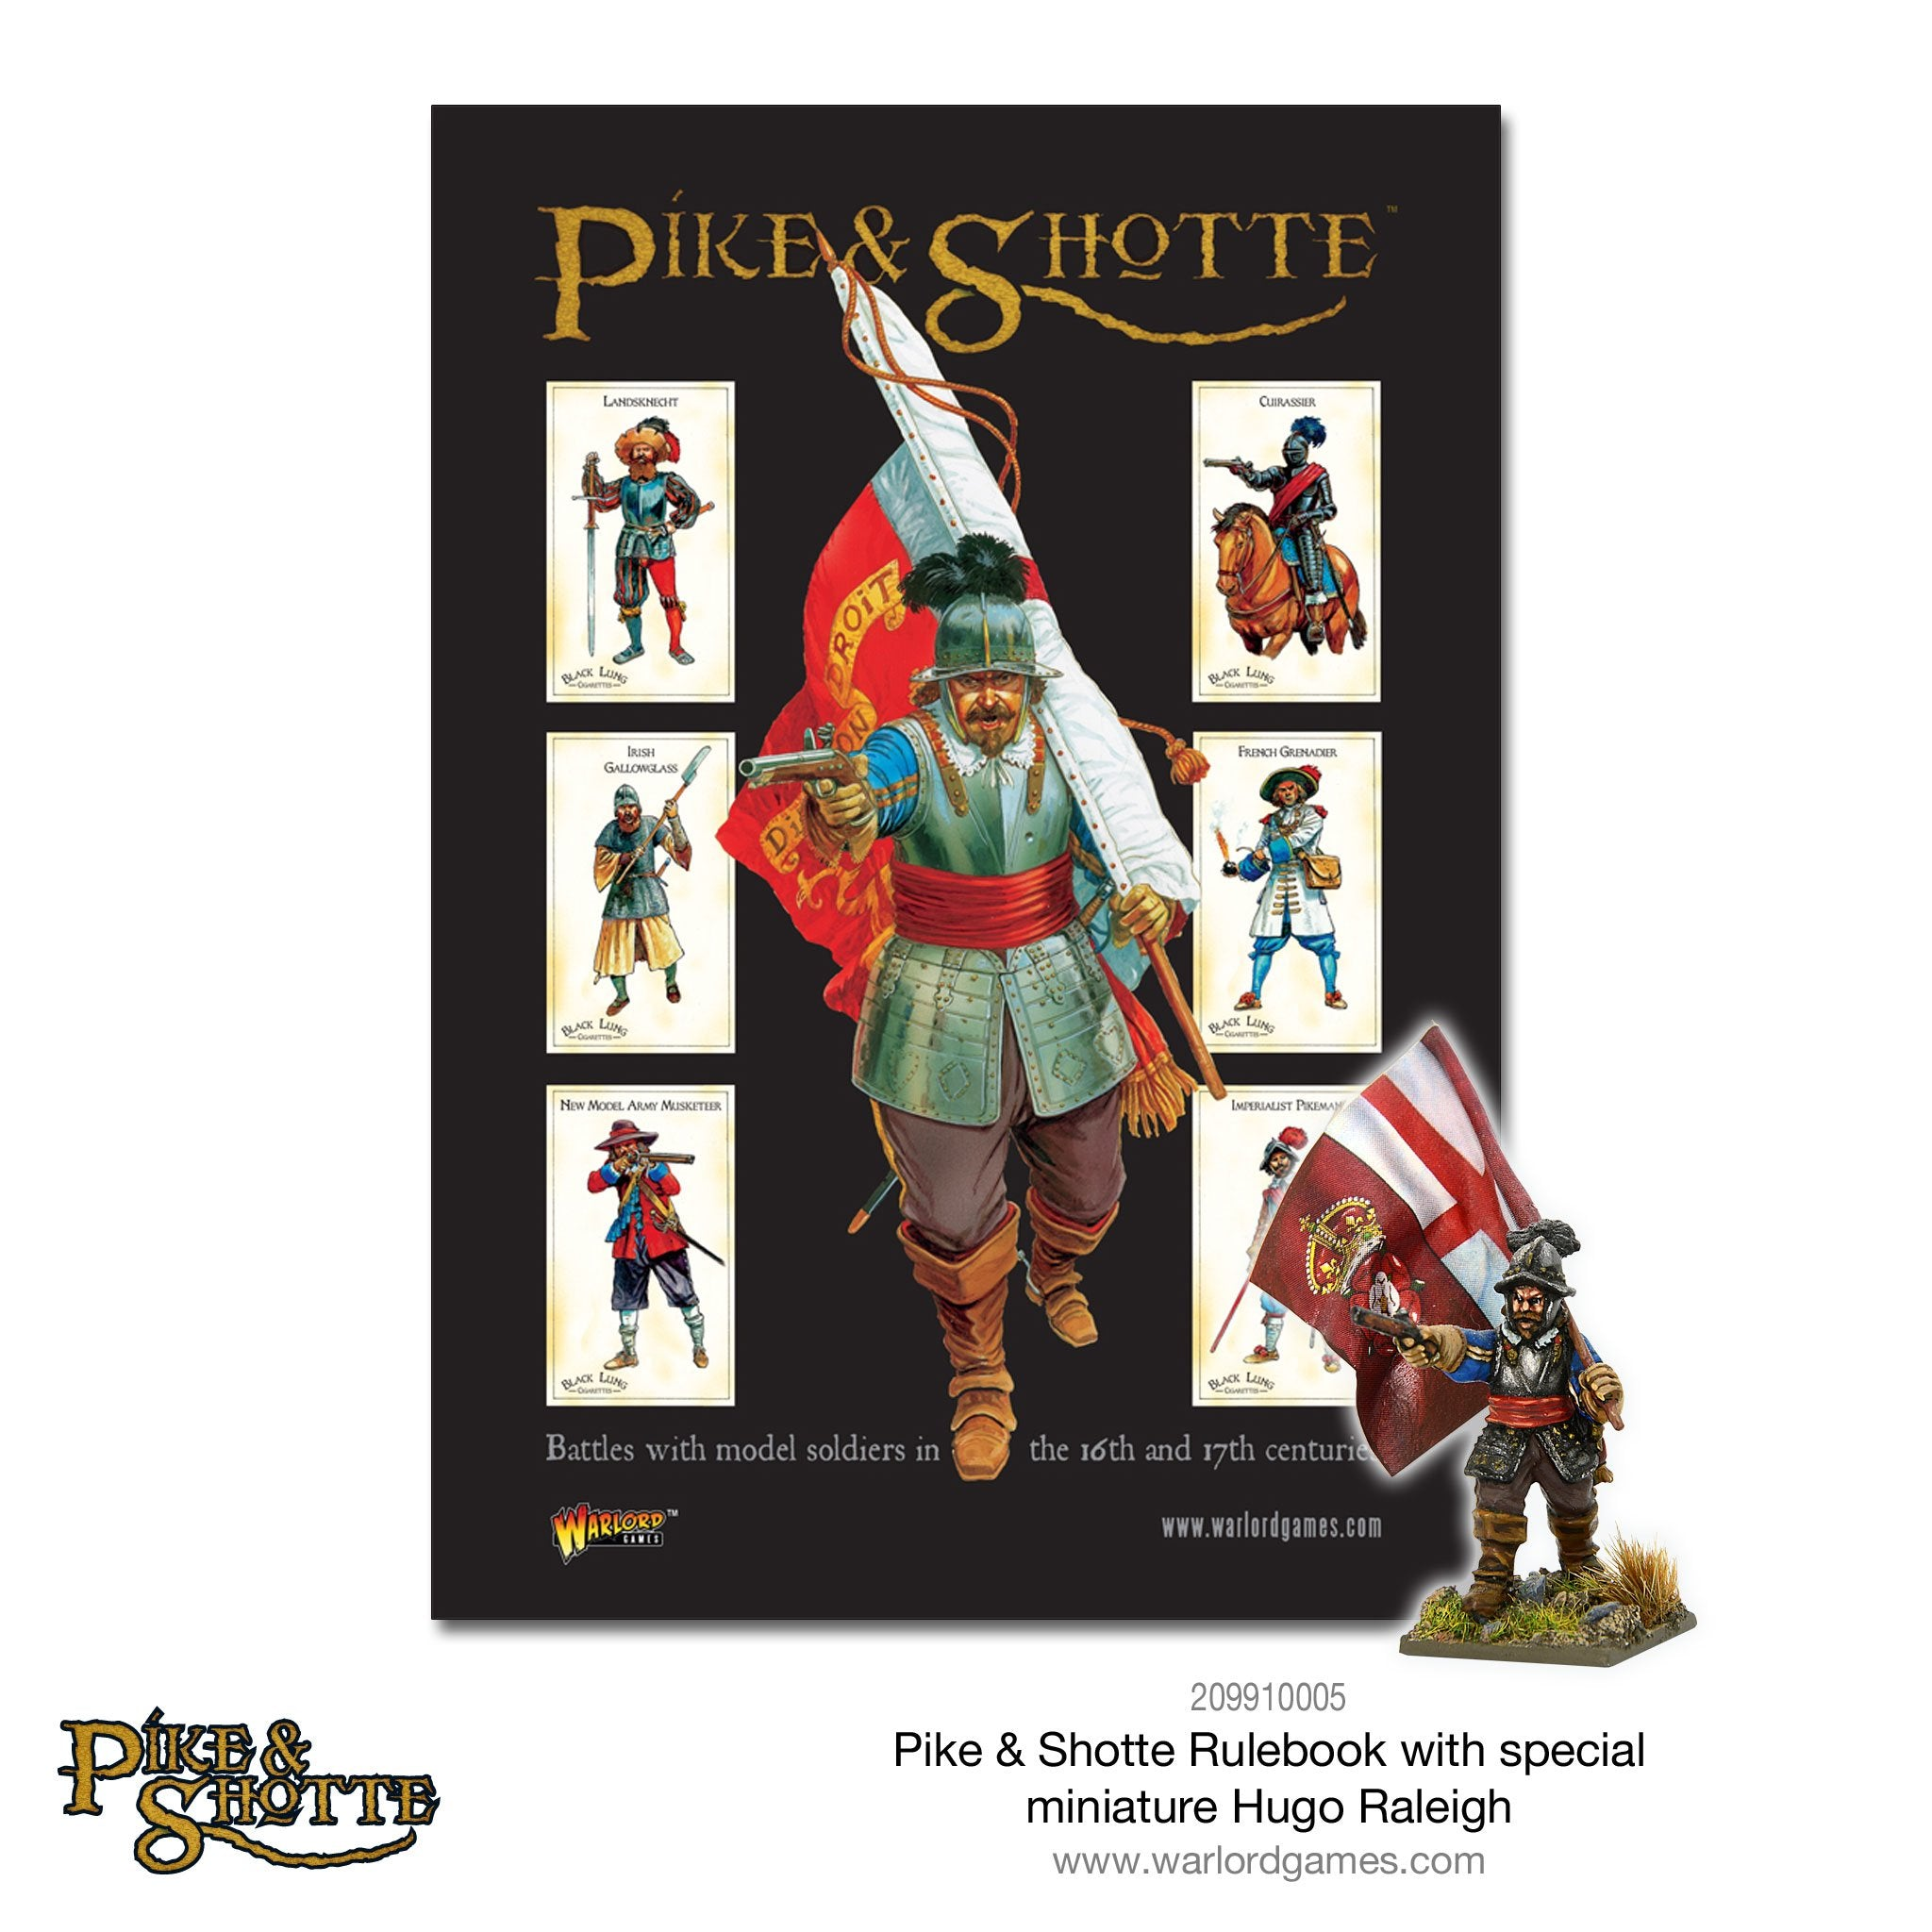 Pike & Shotte Rulebook | Mythicos